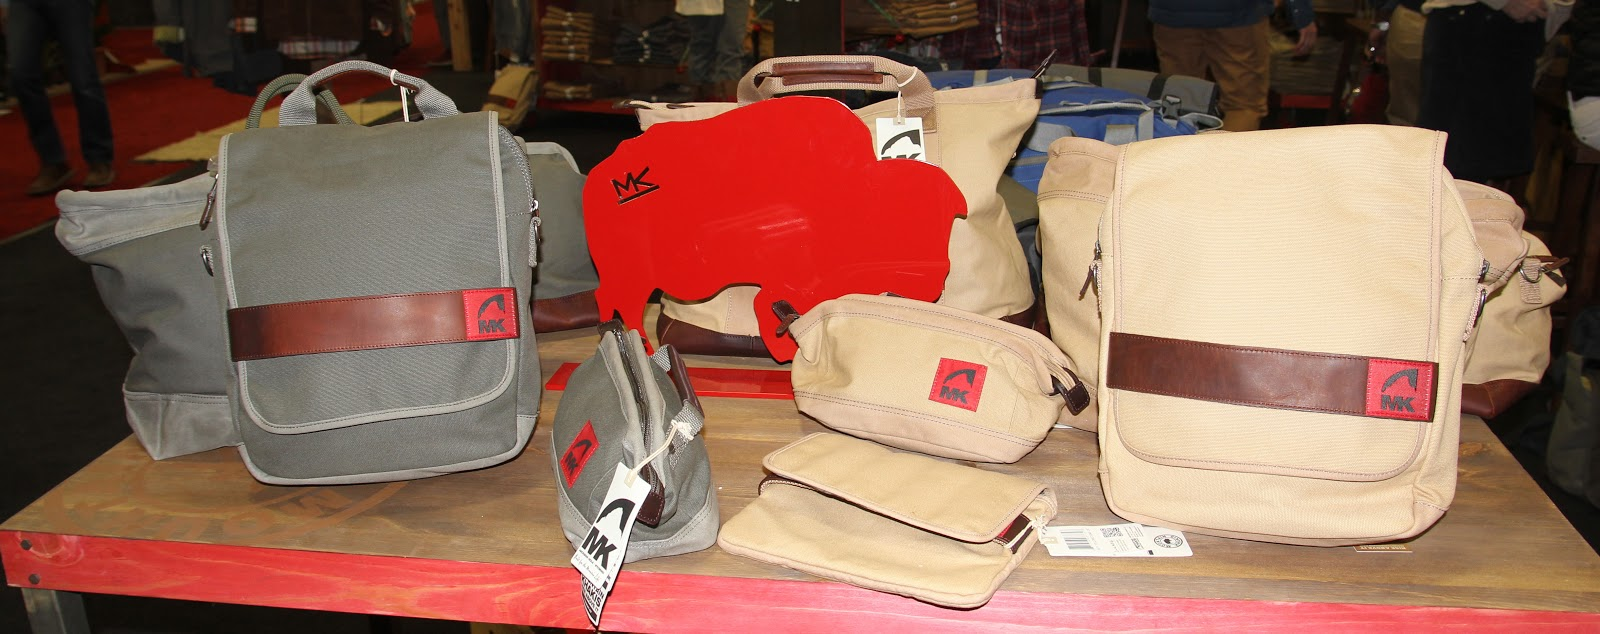 Accessories Rugged Canvas Bag Collection Including Field Overnight Kit Mk Notebook Signature Tote 200z 18oz Waxed W Leather Trim